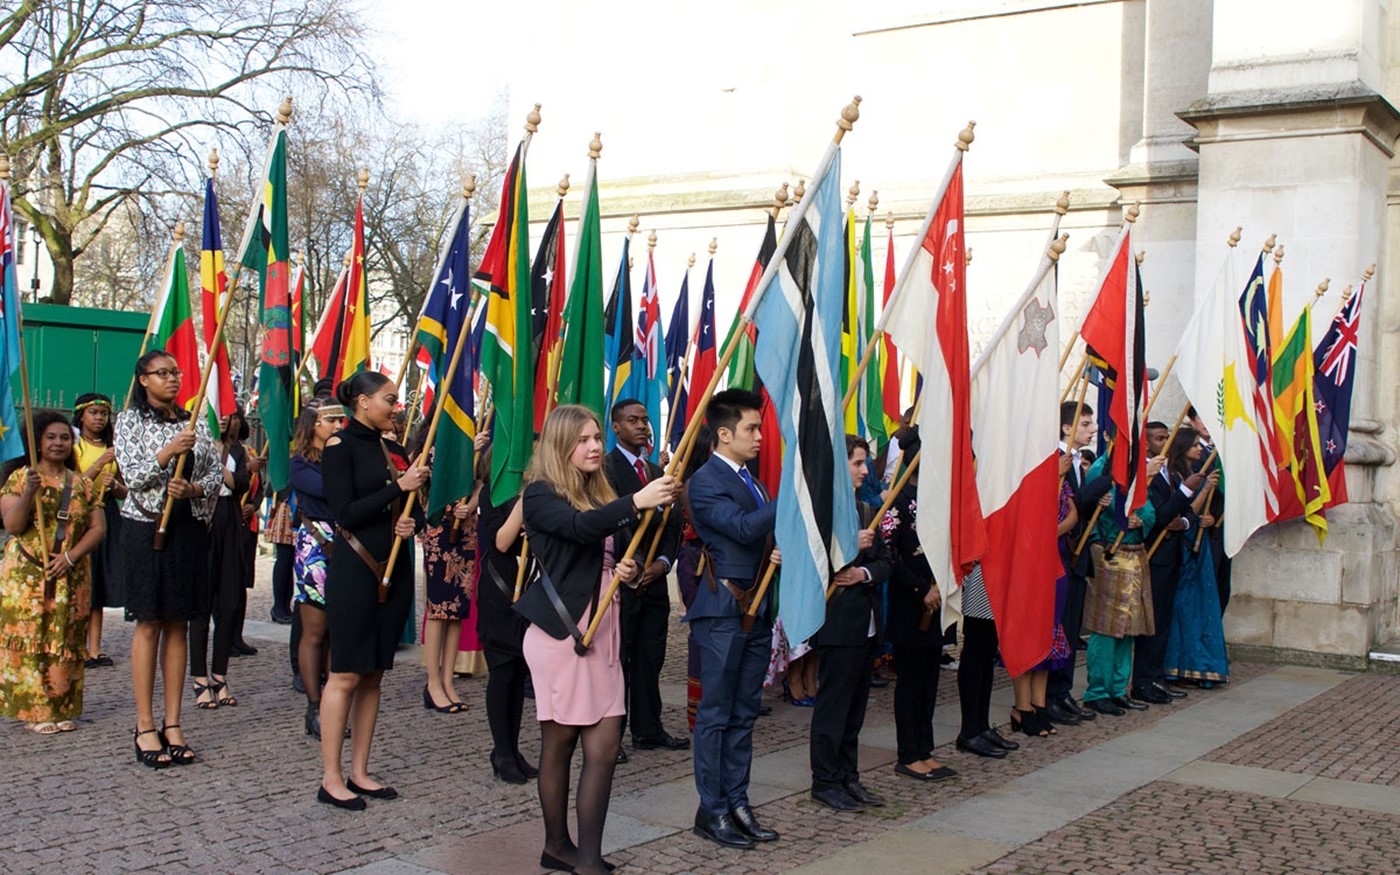 Commonwealth flag bearers line up outside the Abbey after the service